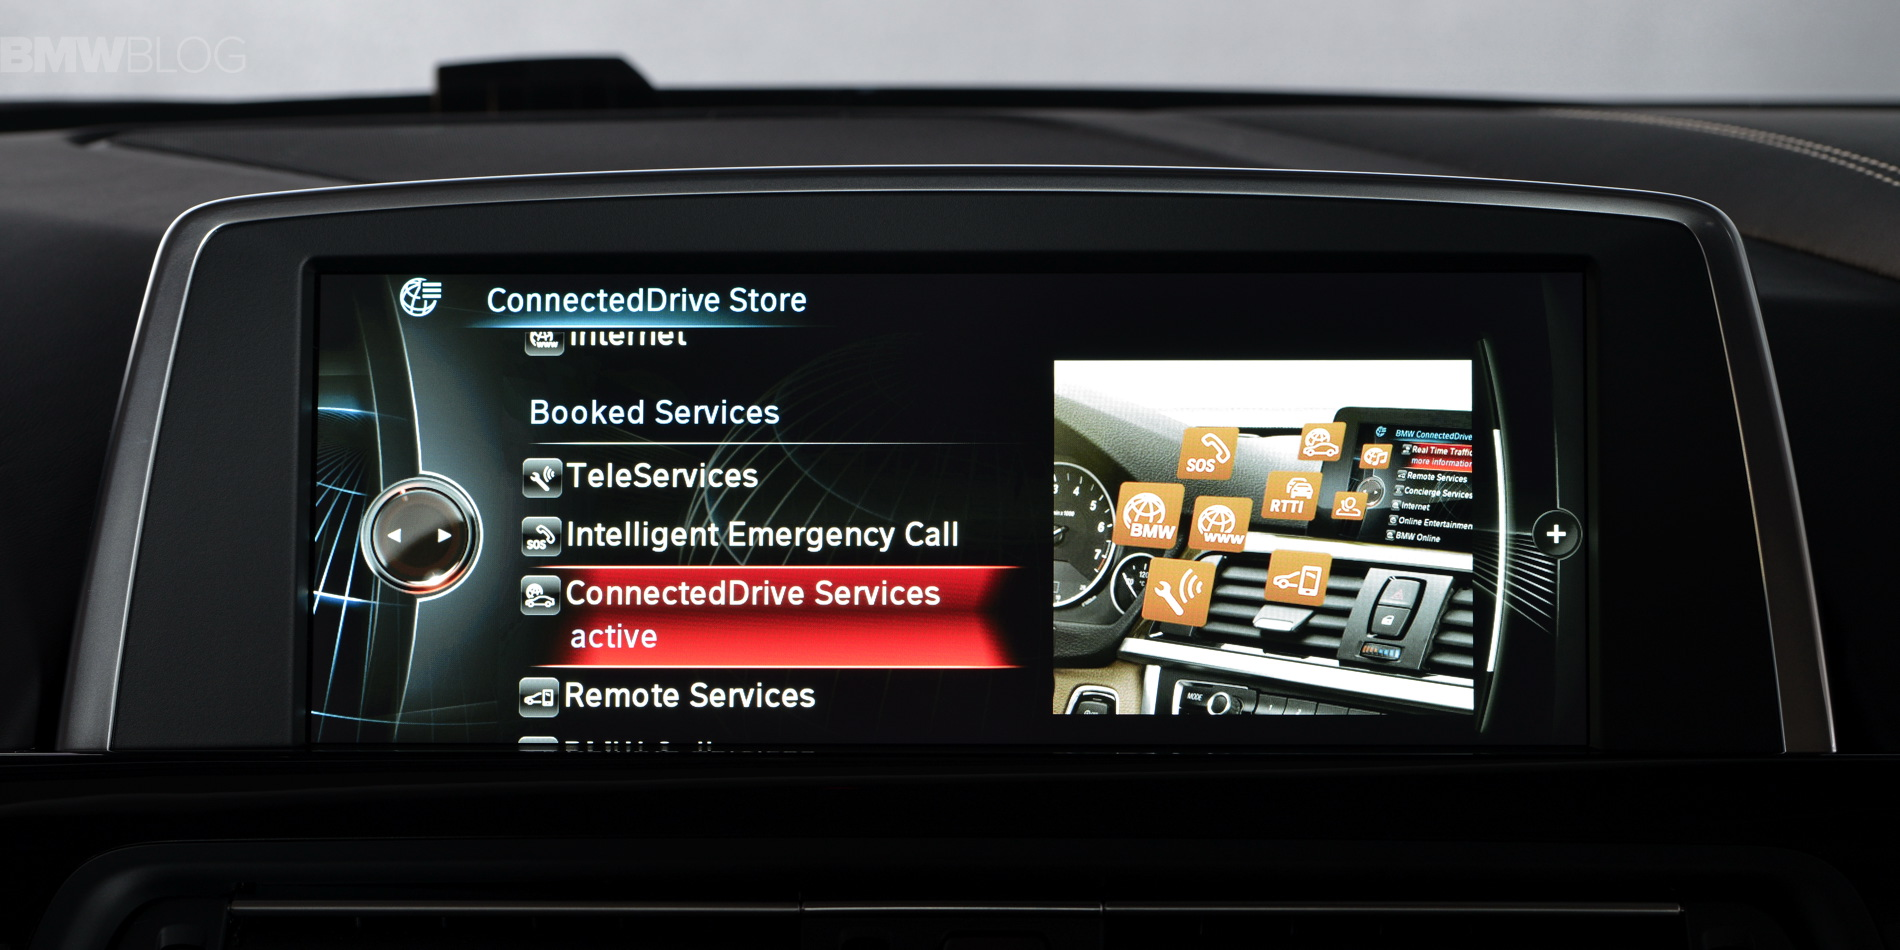 here is the bmw connecteddrive store